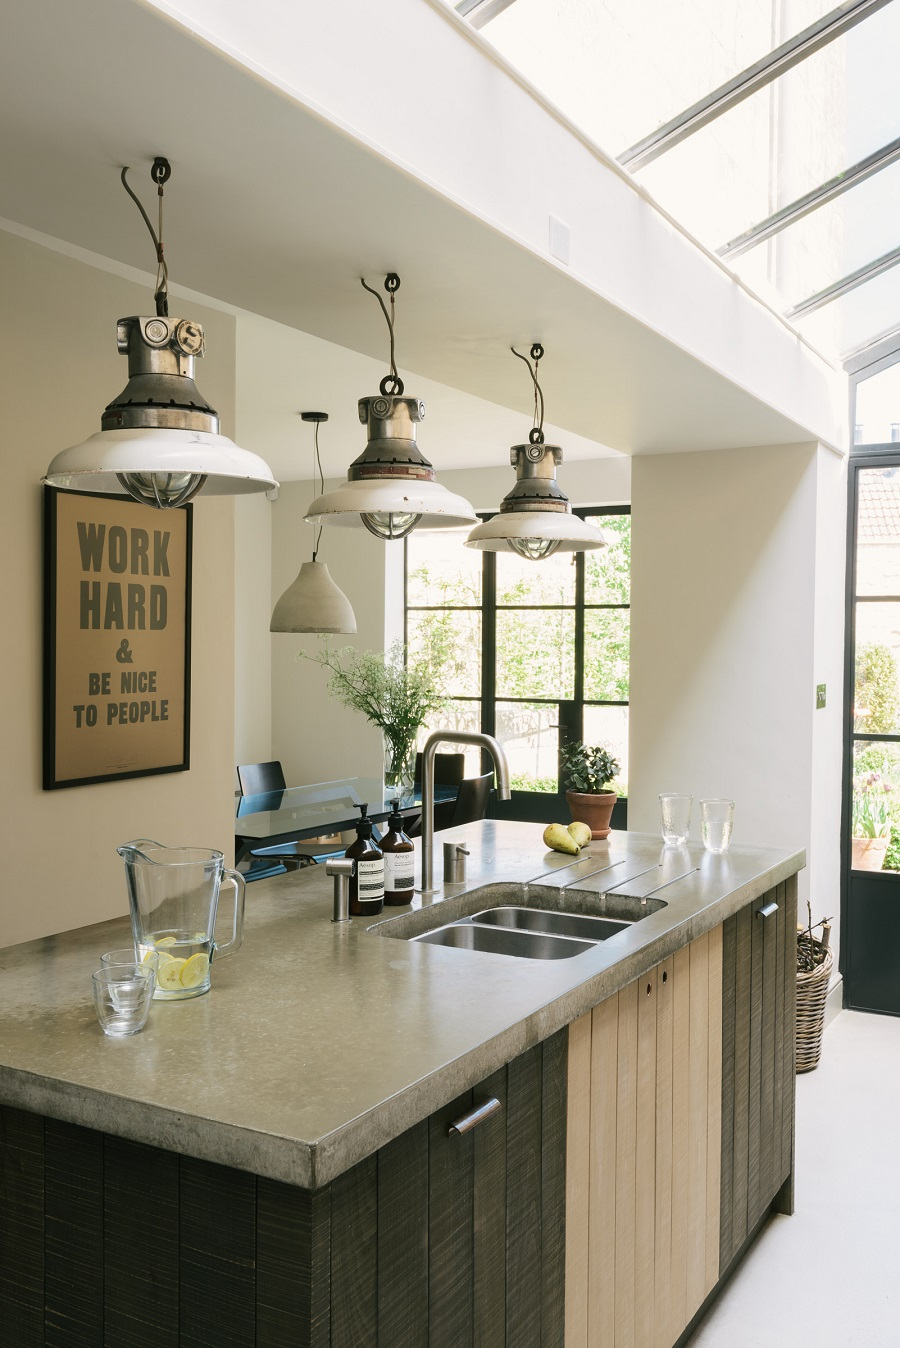 A Cook's Kitchen That Combines a Modern Rustic Aesthetic With Industrial Style